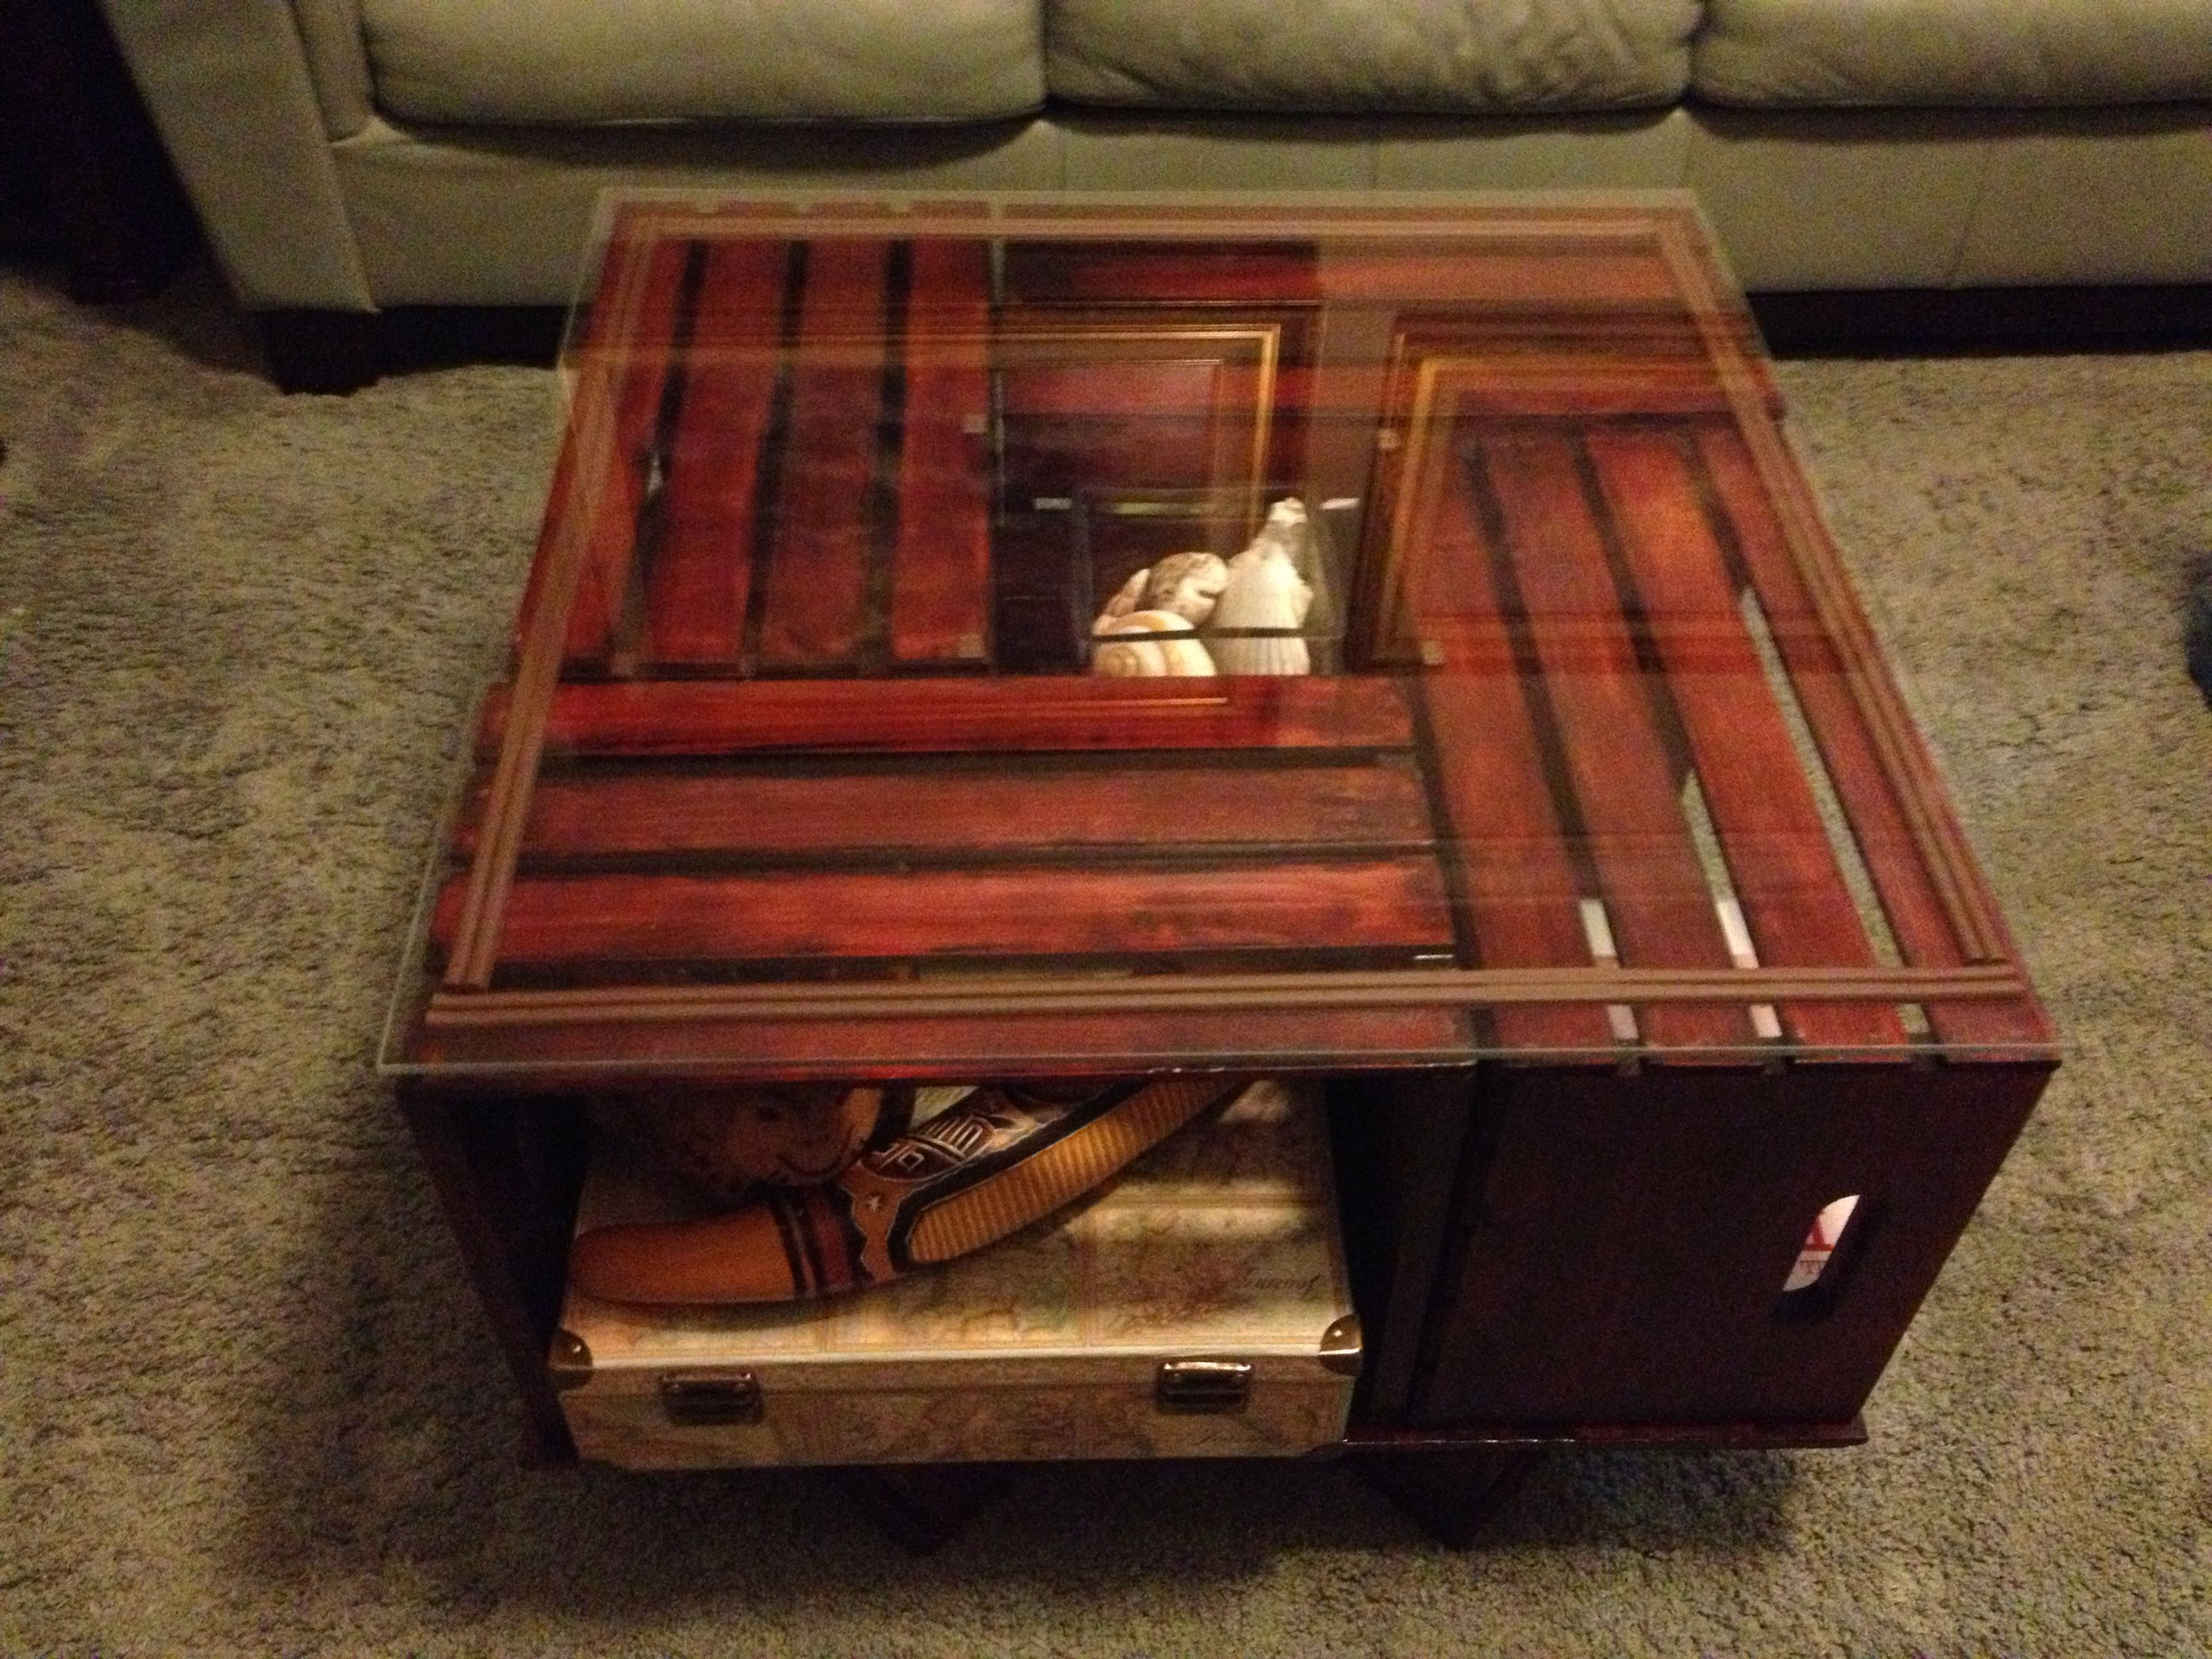 Crate Coffee Table With A Glass Top I Would Put Glass Over It Just To Make It More Stable And With Teenagers Ea Crate Coffee Table Coffee Table Wood Projects [ 2448 x 3264 Pixel ]